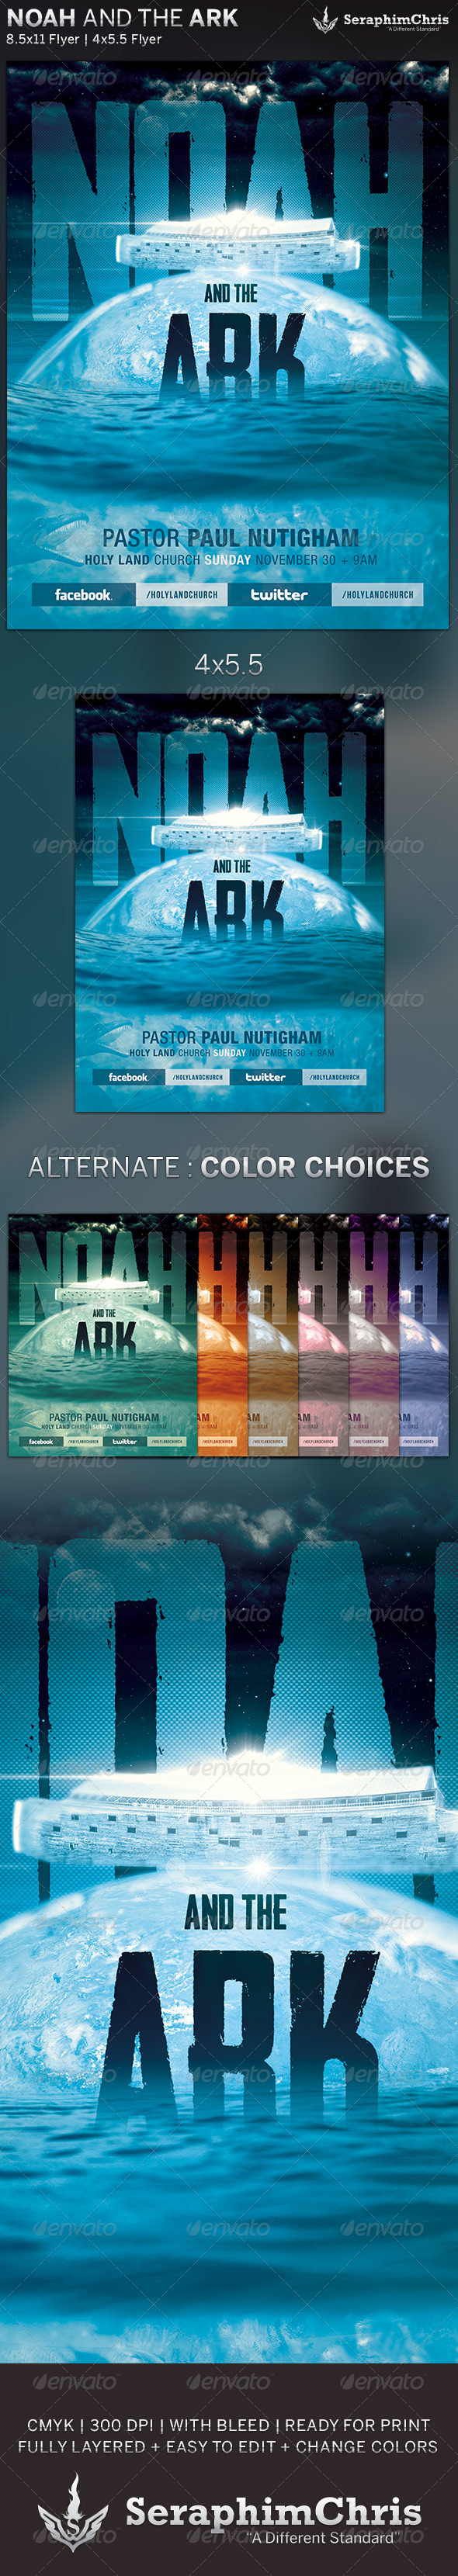 Noah and the Ark: Church Flyer Template - Church Flyers